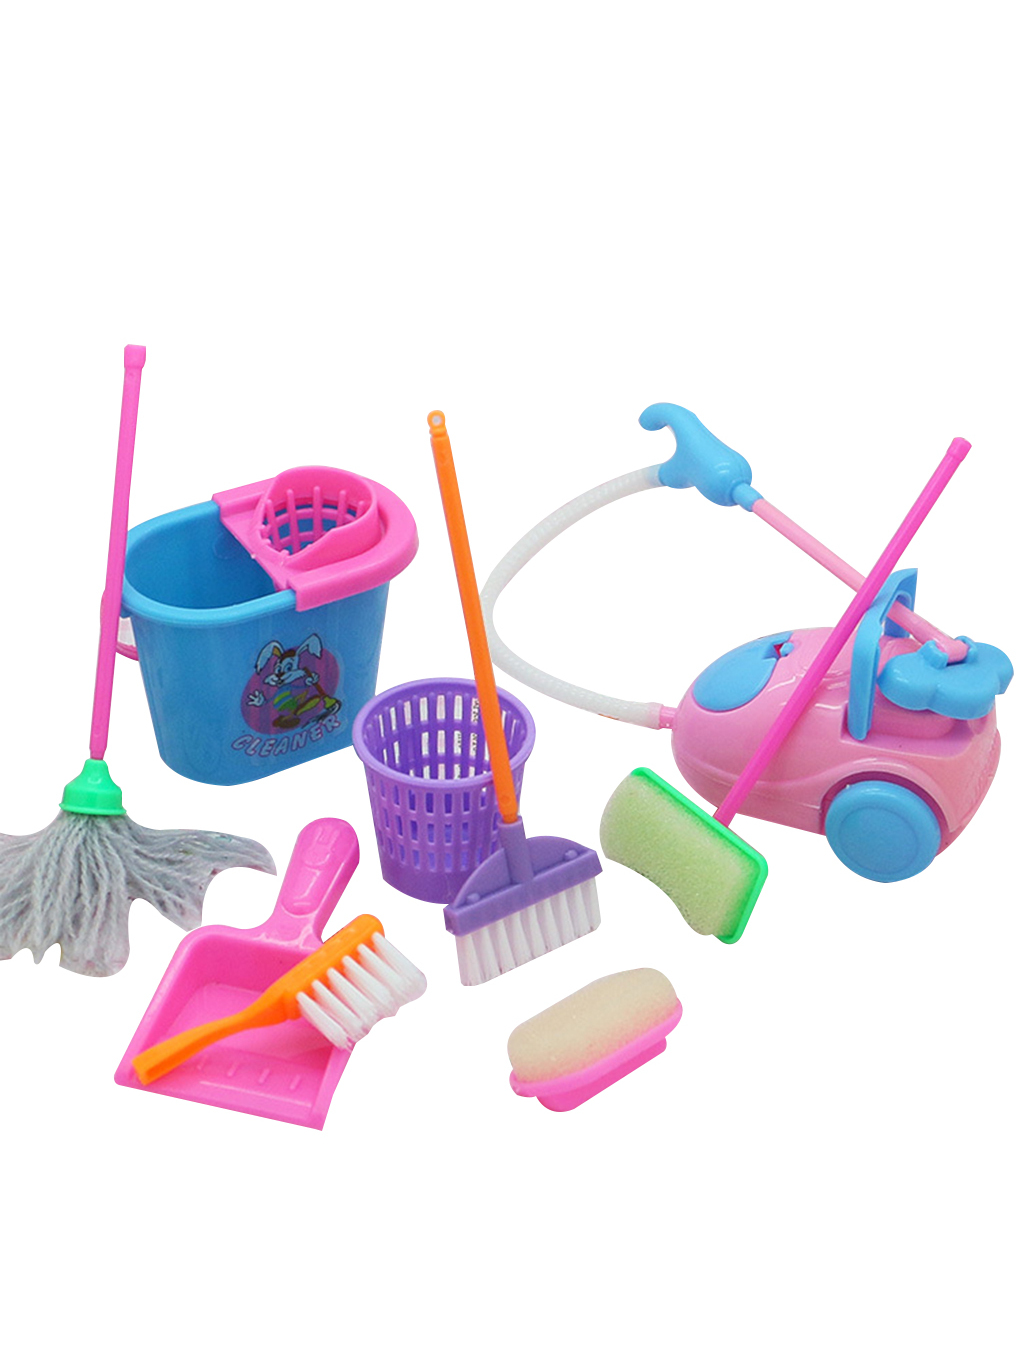 Doll-Accessories Dollhouse Cleaning-Tools Educational-Toy Kids Mini for High-Quality